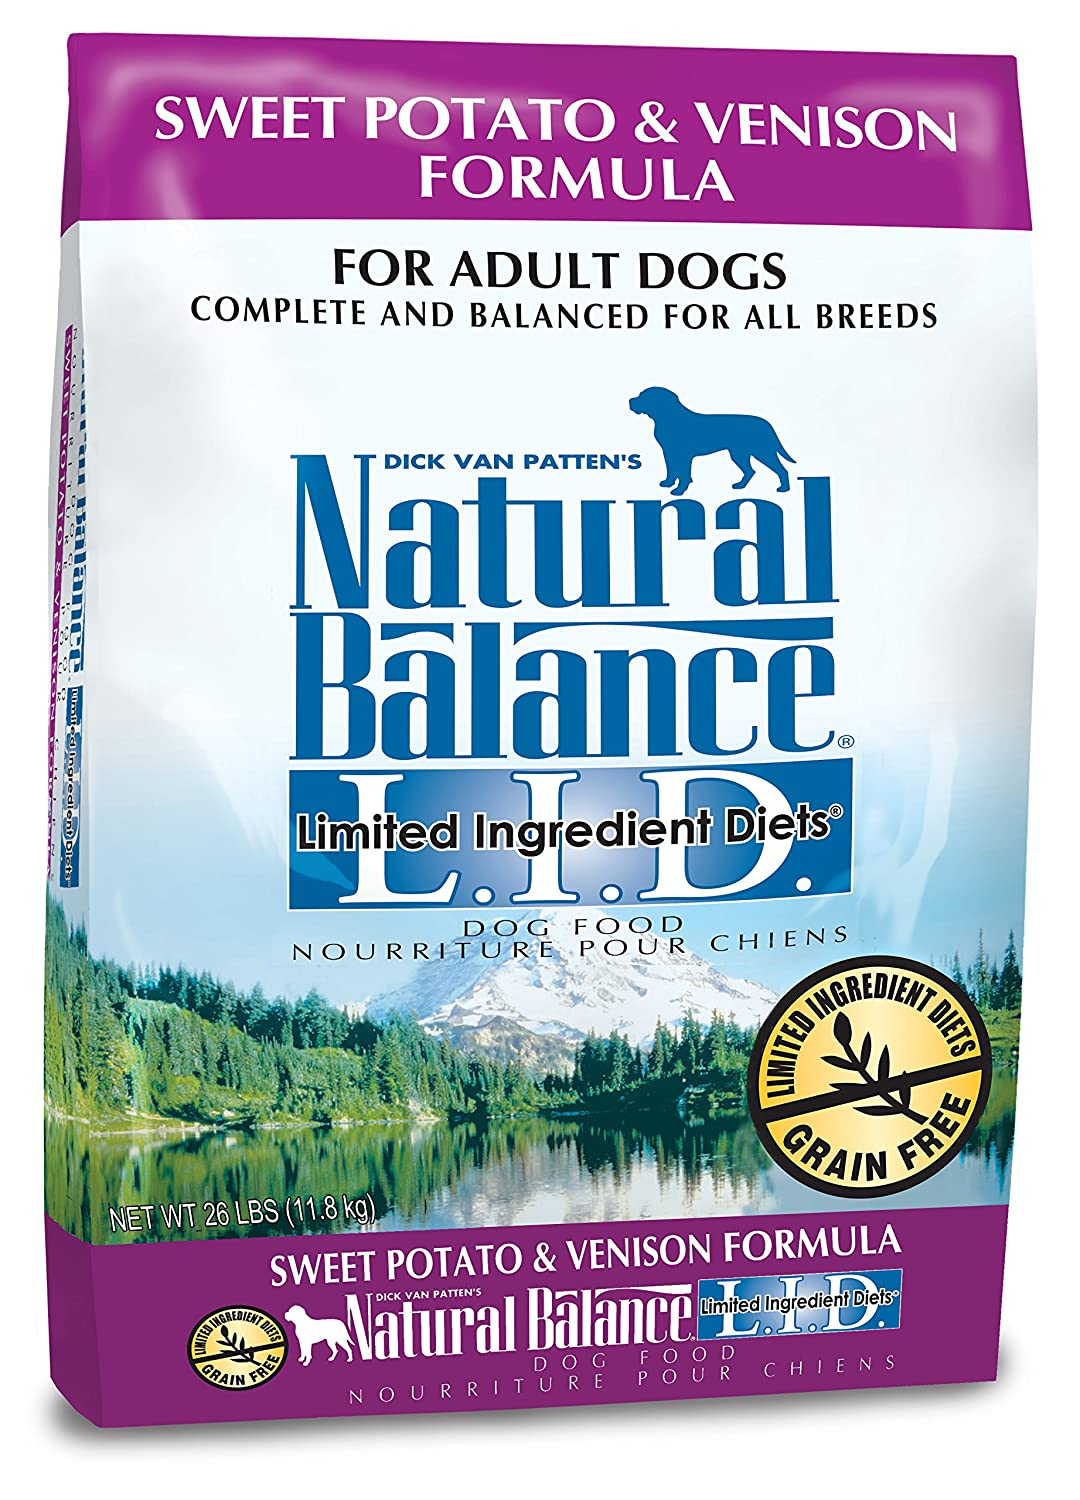 Natural Balance Limited Ingredient Diets Dry Dog Food - Sweet Potato & Venison Formula